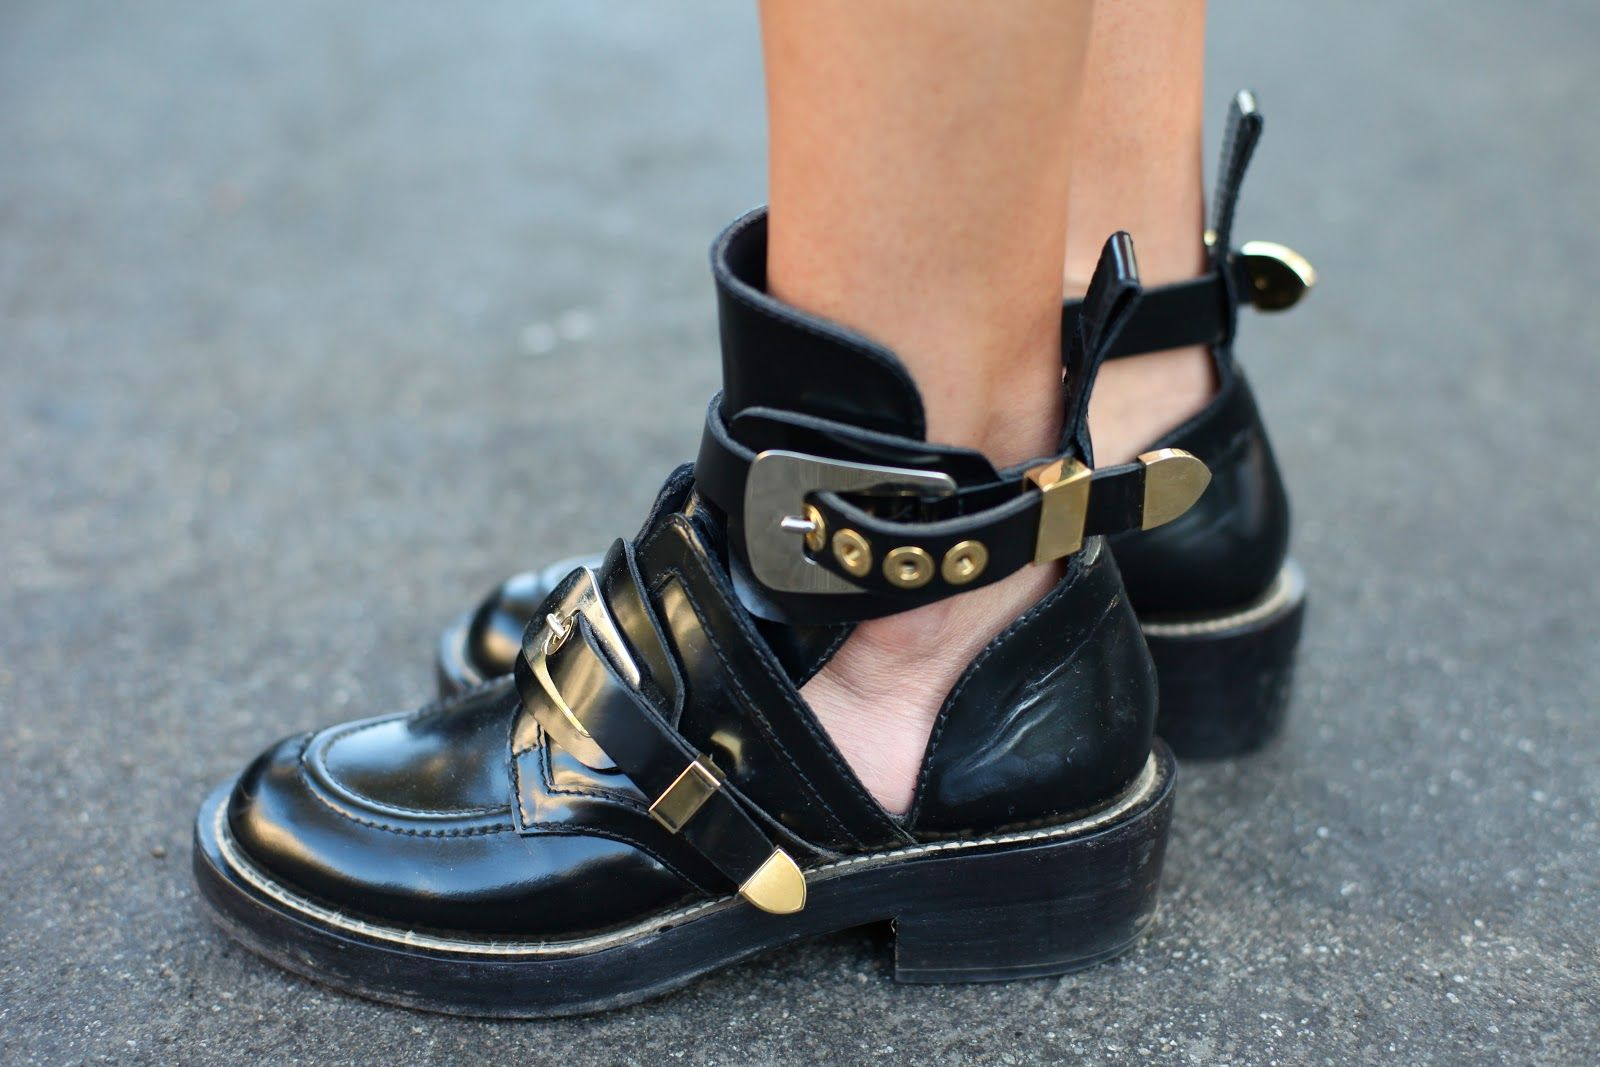 Fly Shoes From Ring My Bell Blog Balenciaga Boots Boots Chelsea Boots